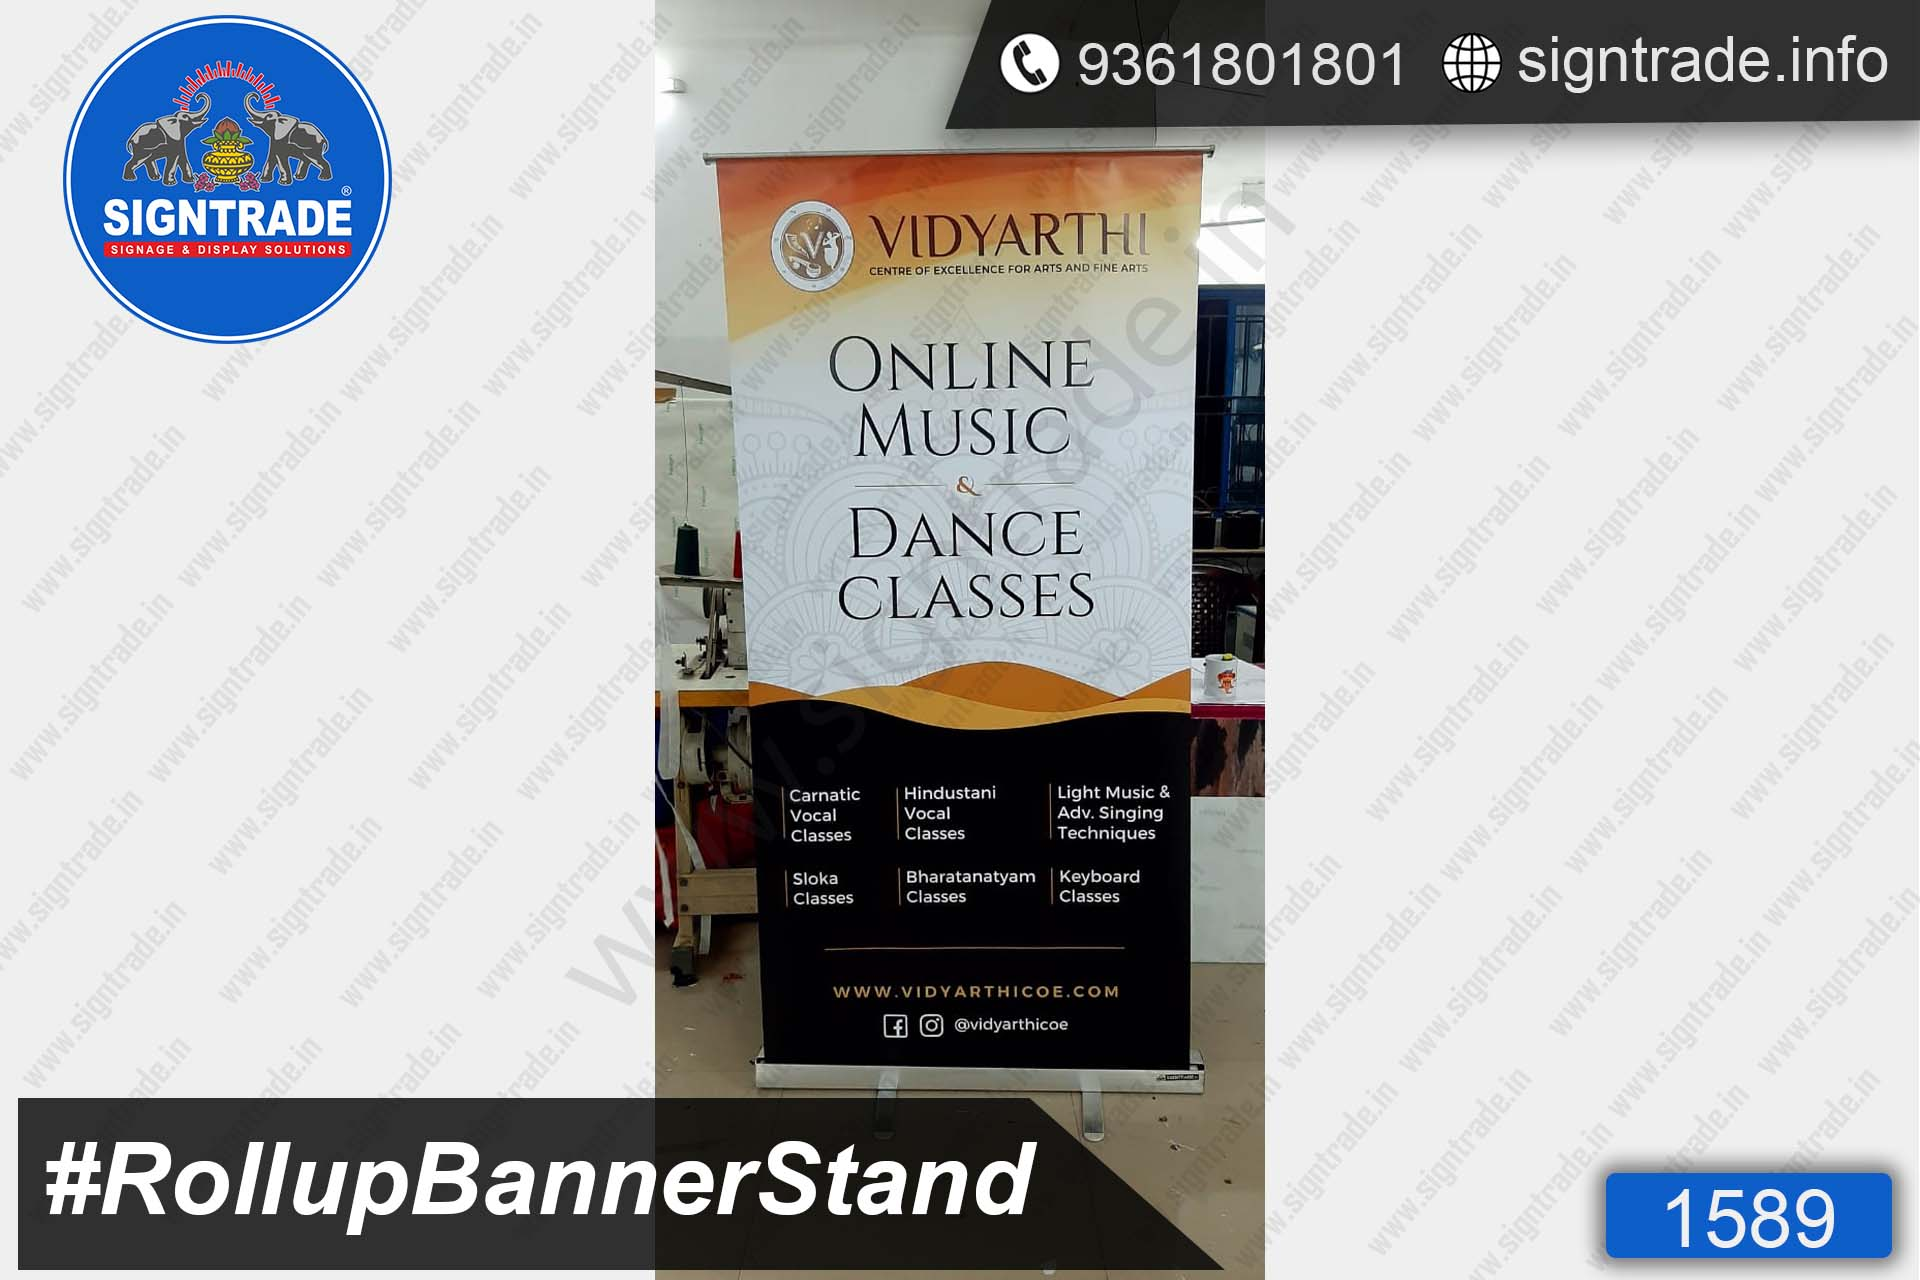 Vidyarthi Online Music & Dance Classes - SIGNTRADE - Roll Up Banner Stand Manufacturers in Chennai